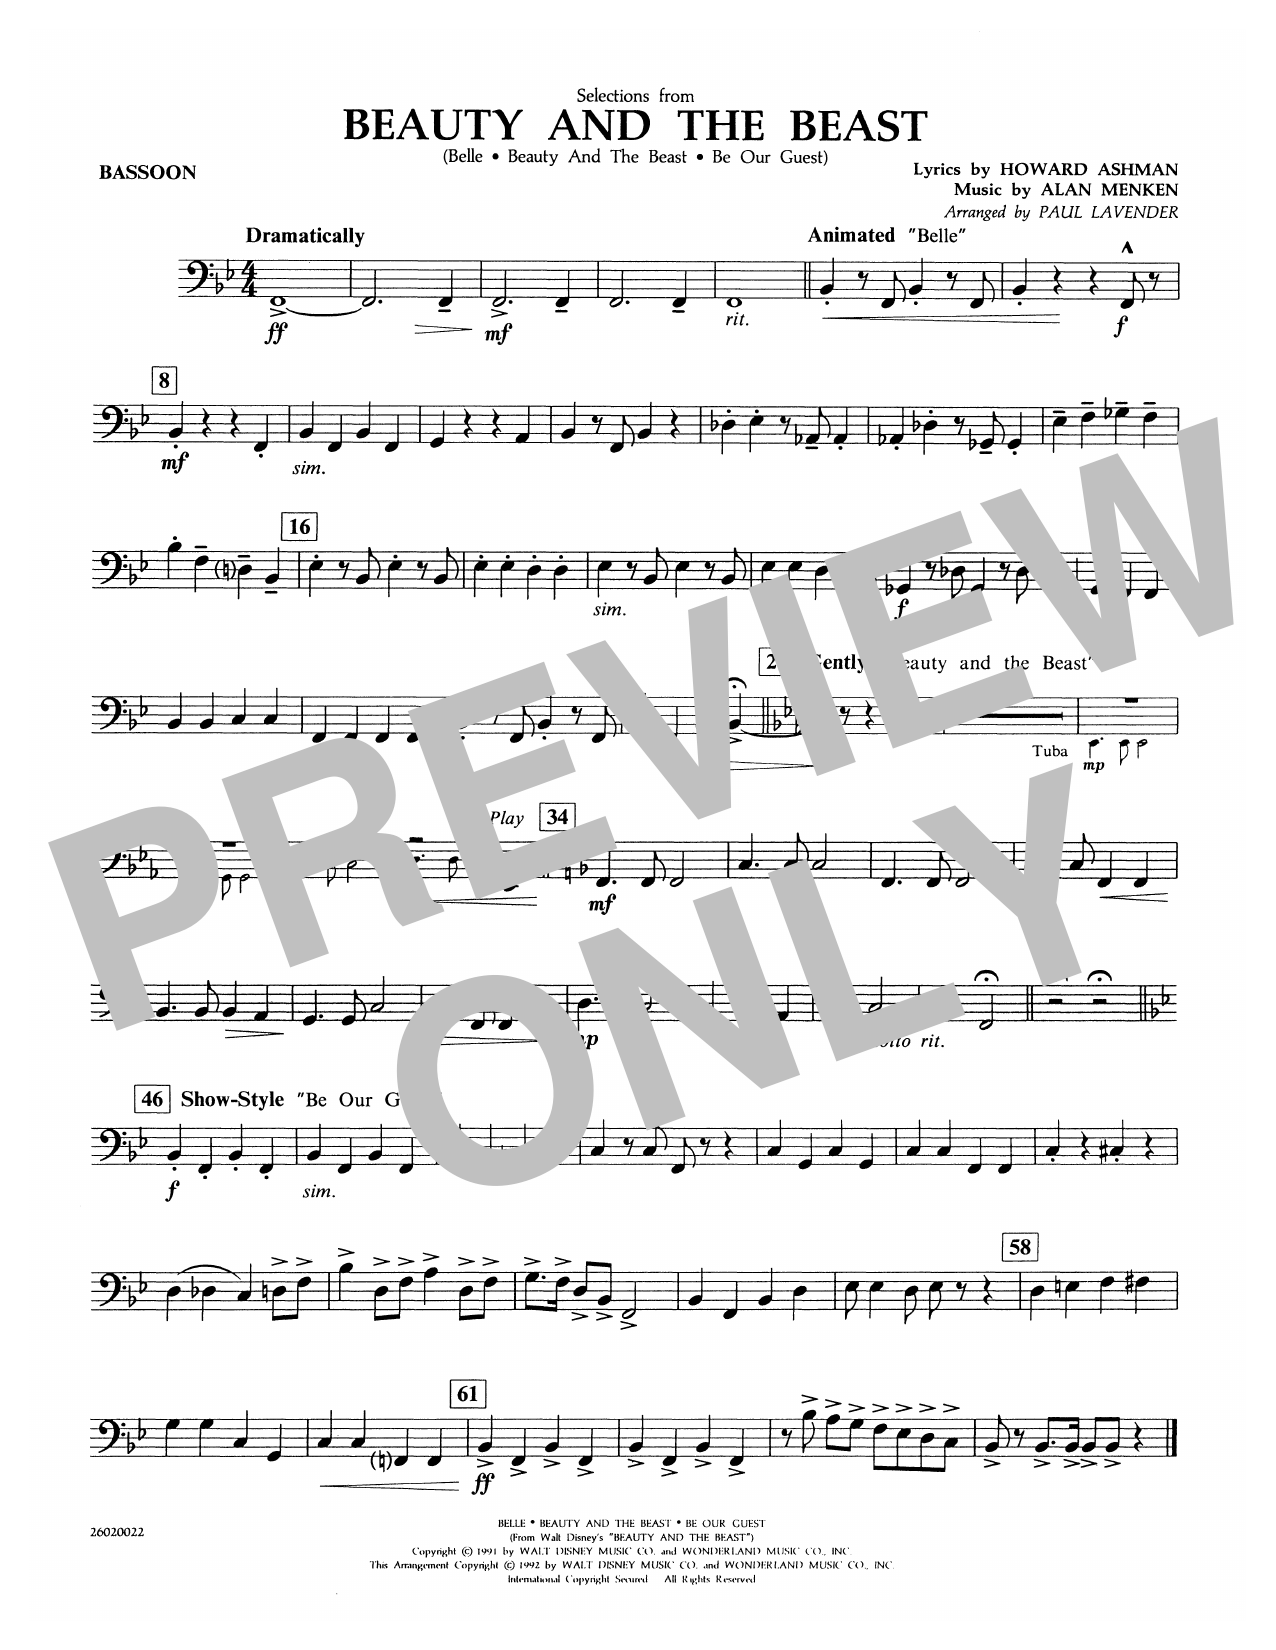 Paul Lavender Selections from Beauty and the Beast - Bassoon sheet music notes and chords. Download Printable PDF.